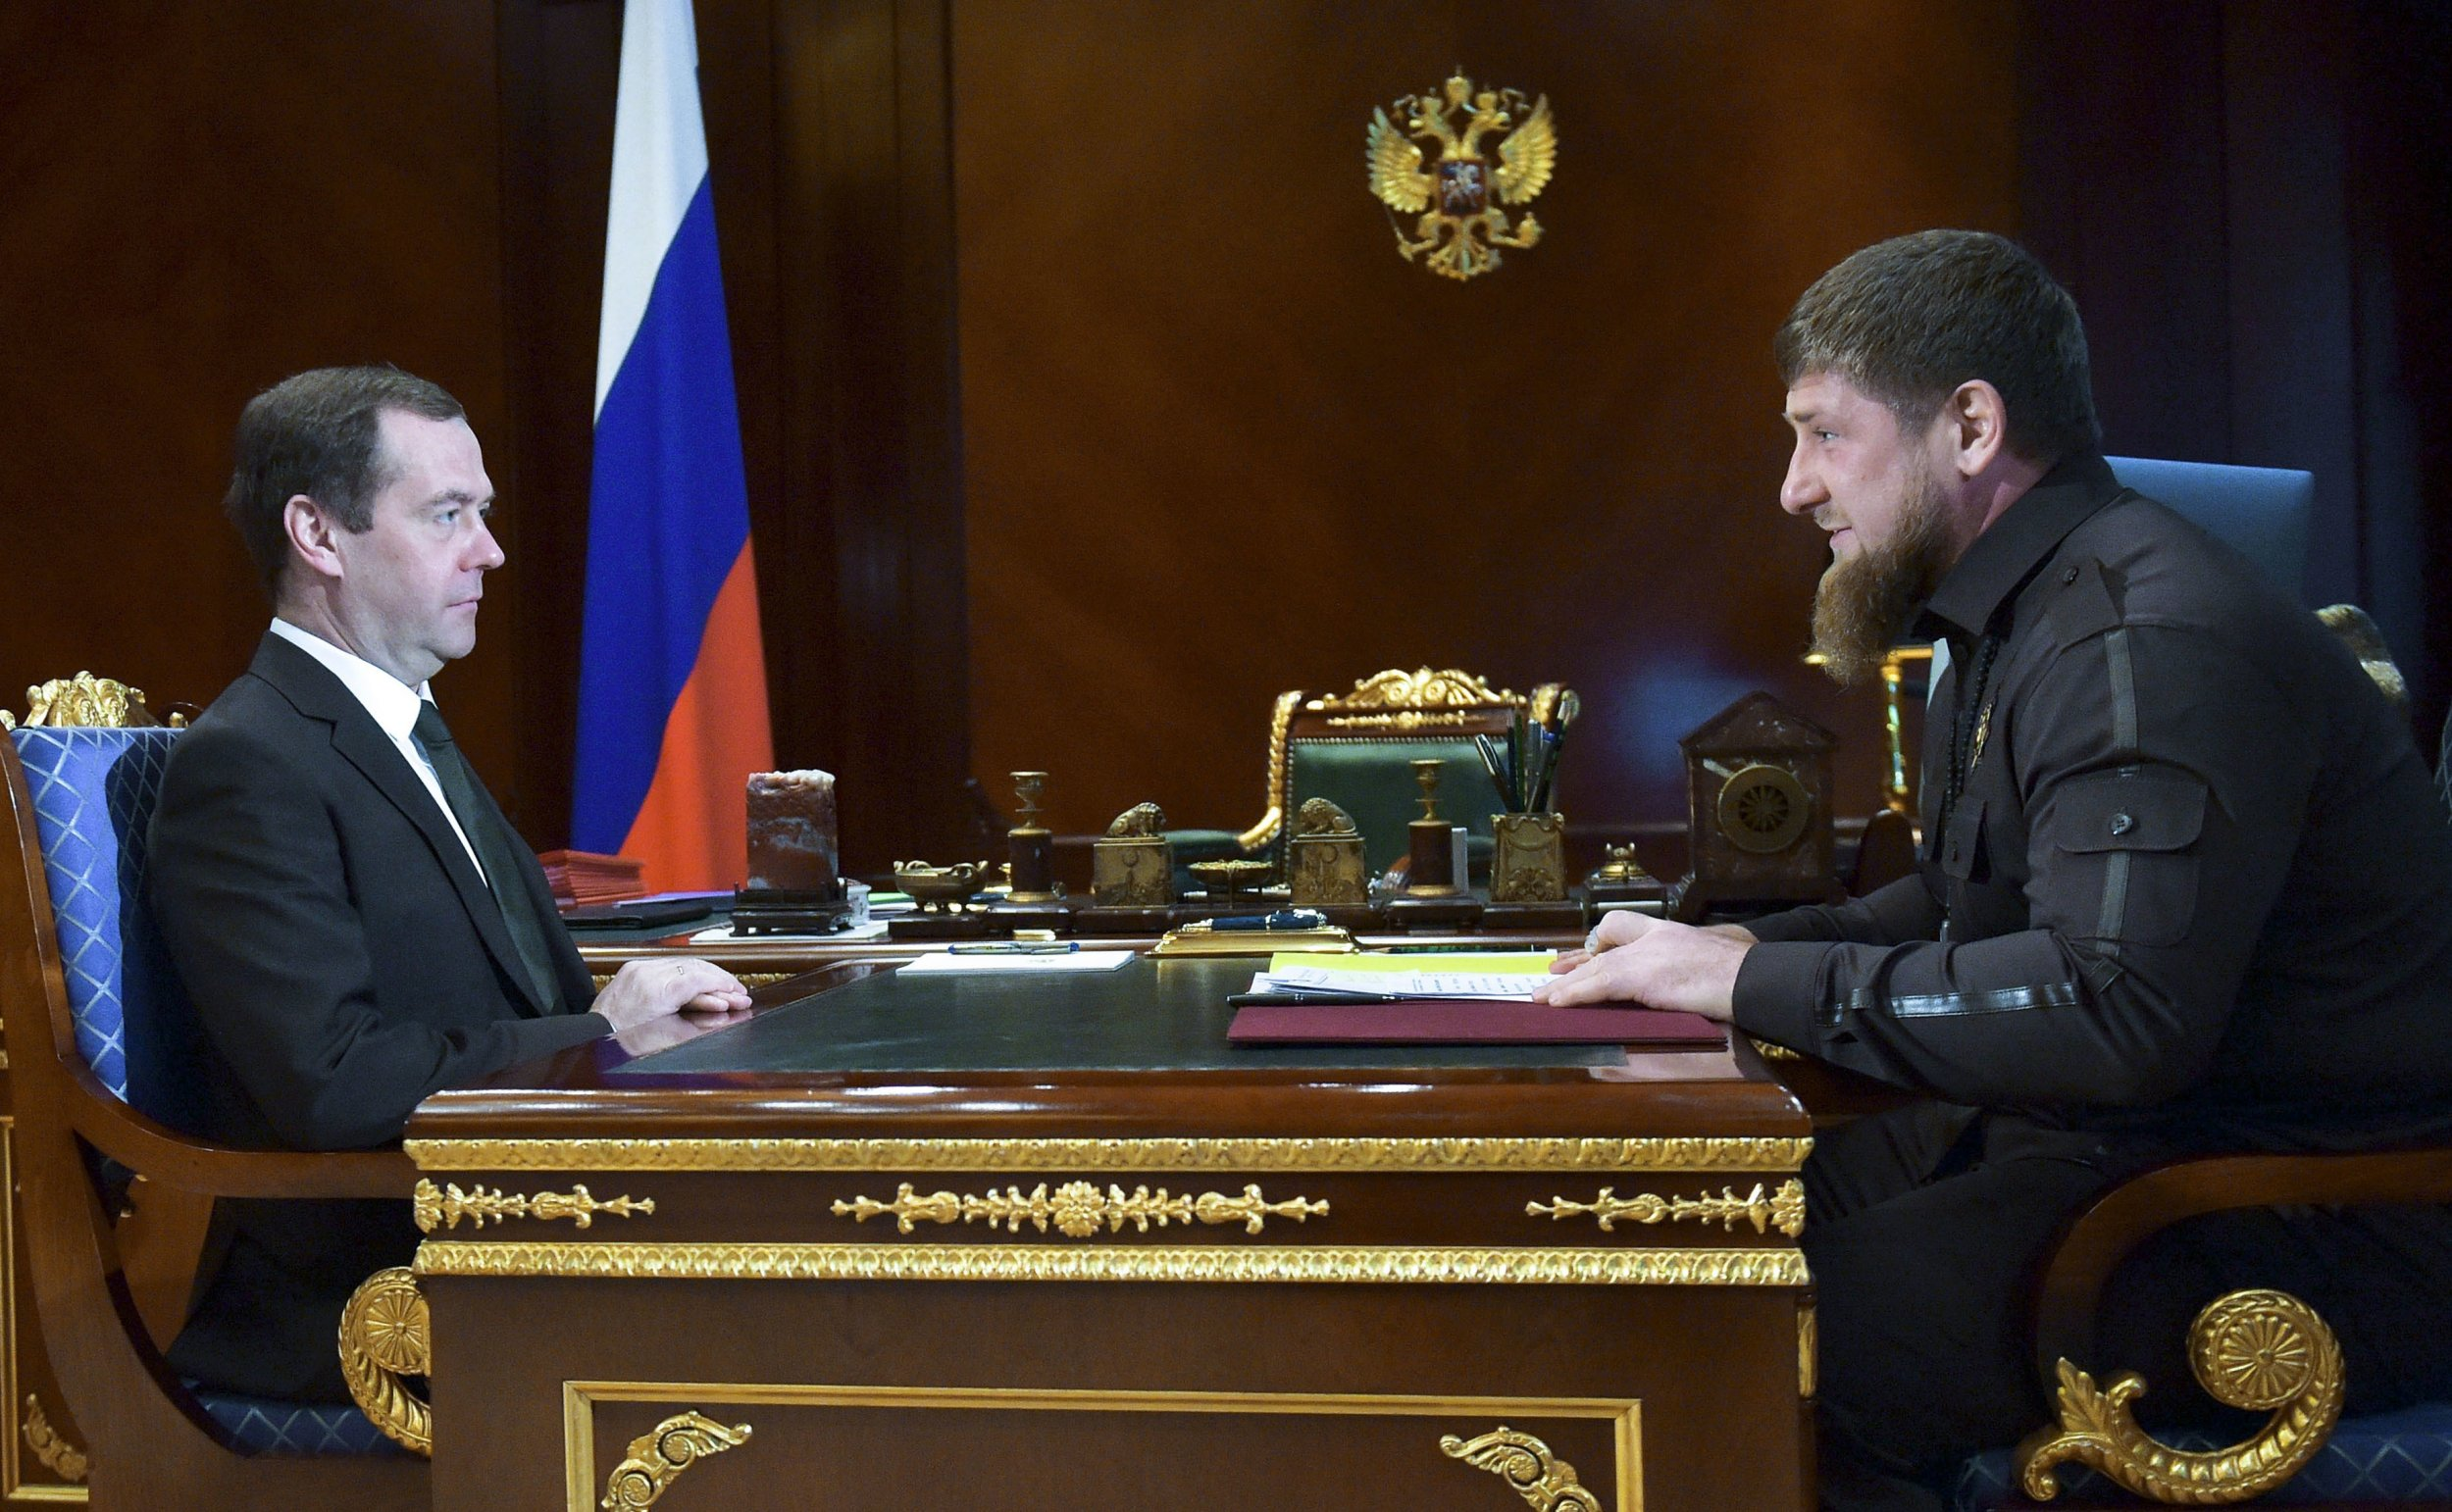 Russian Prime Minister Dmitry Medvedev, left, listens to Chechen regional leader Ramzan Kadyrov during their meeting in the Gorky residence outside Moscow, Russia, Thursday, March 30, 2017. (Alexander Astafyev, Sputnik, Government Pool Photo via AP)